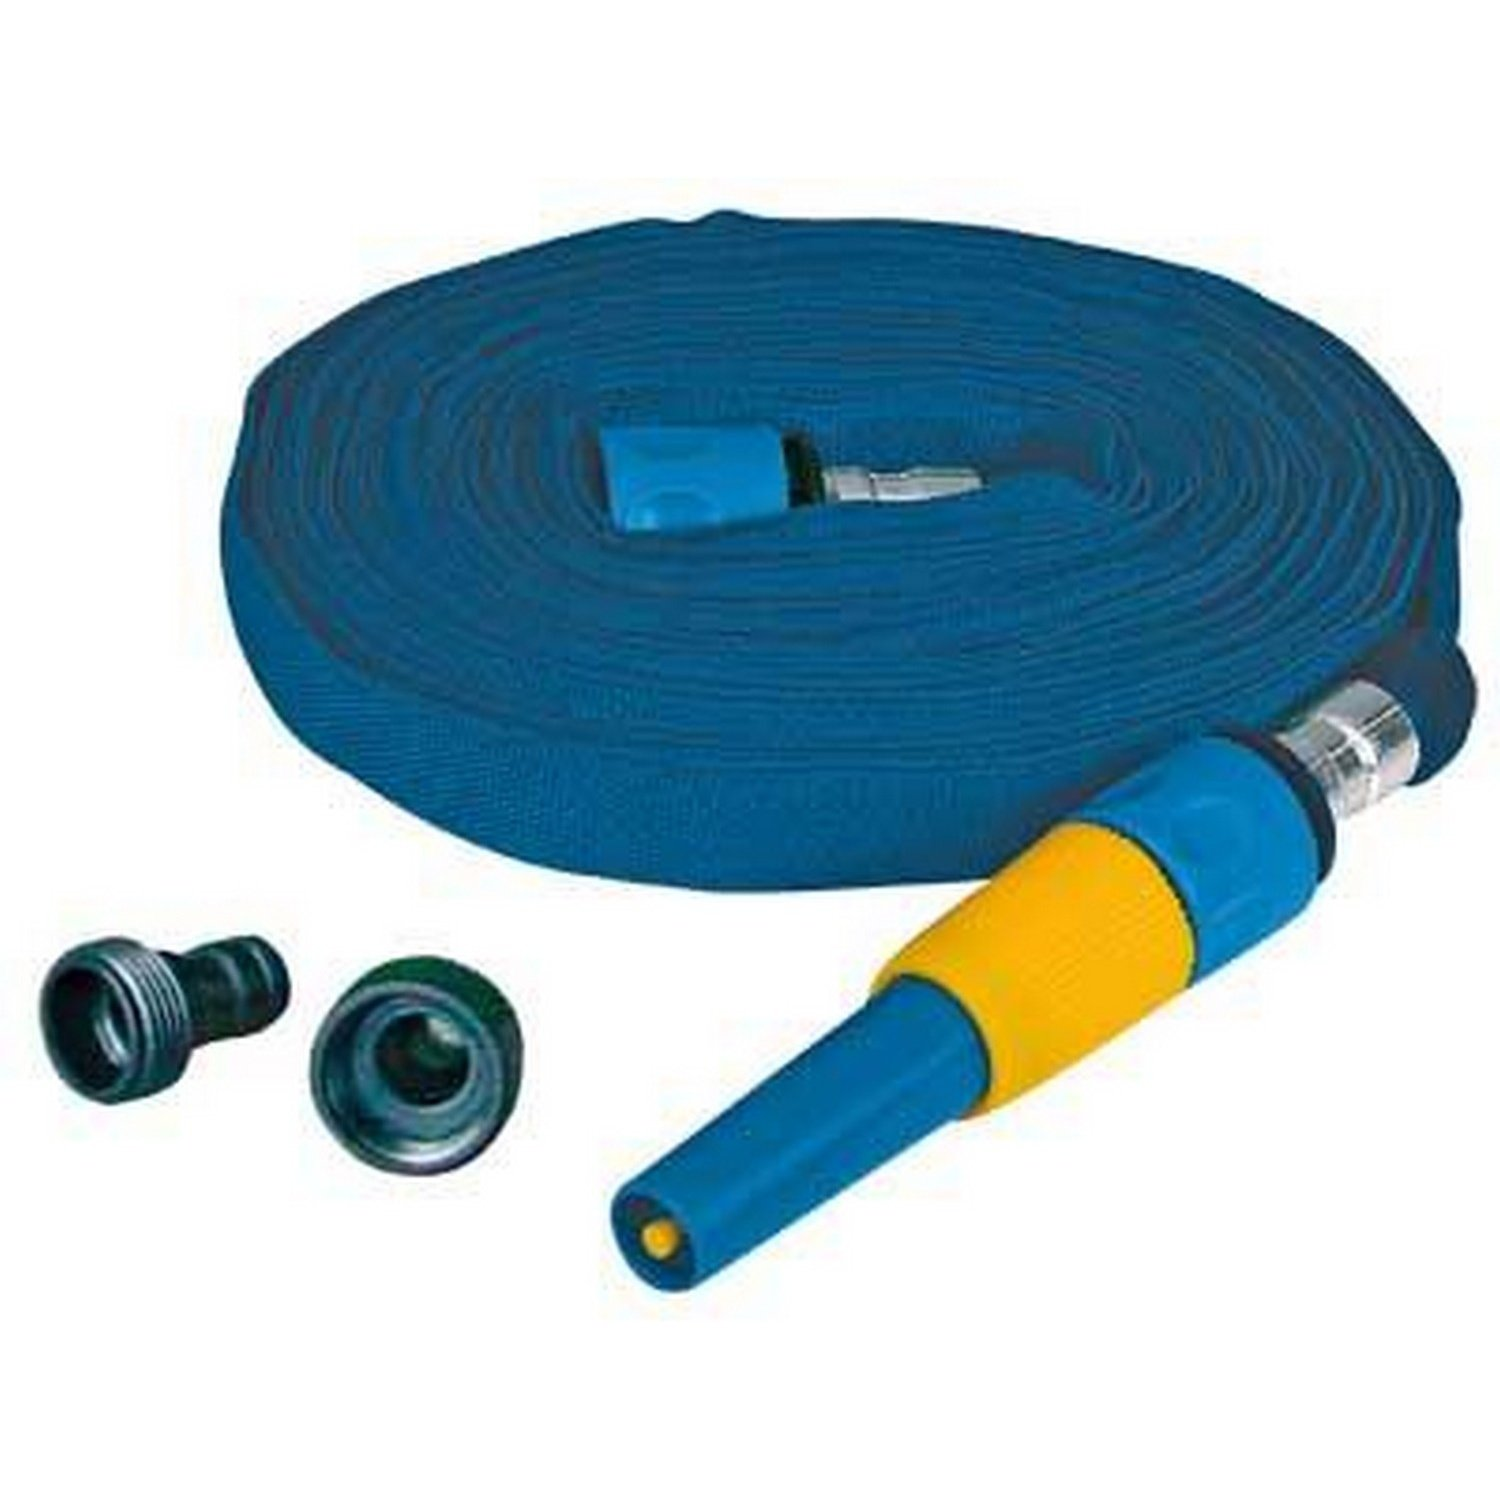 Brunner Felix 9m/29.5ft Flat Water Hose (One Size) (Blue)